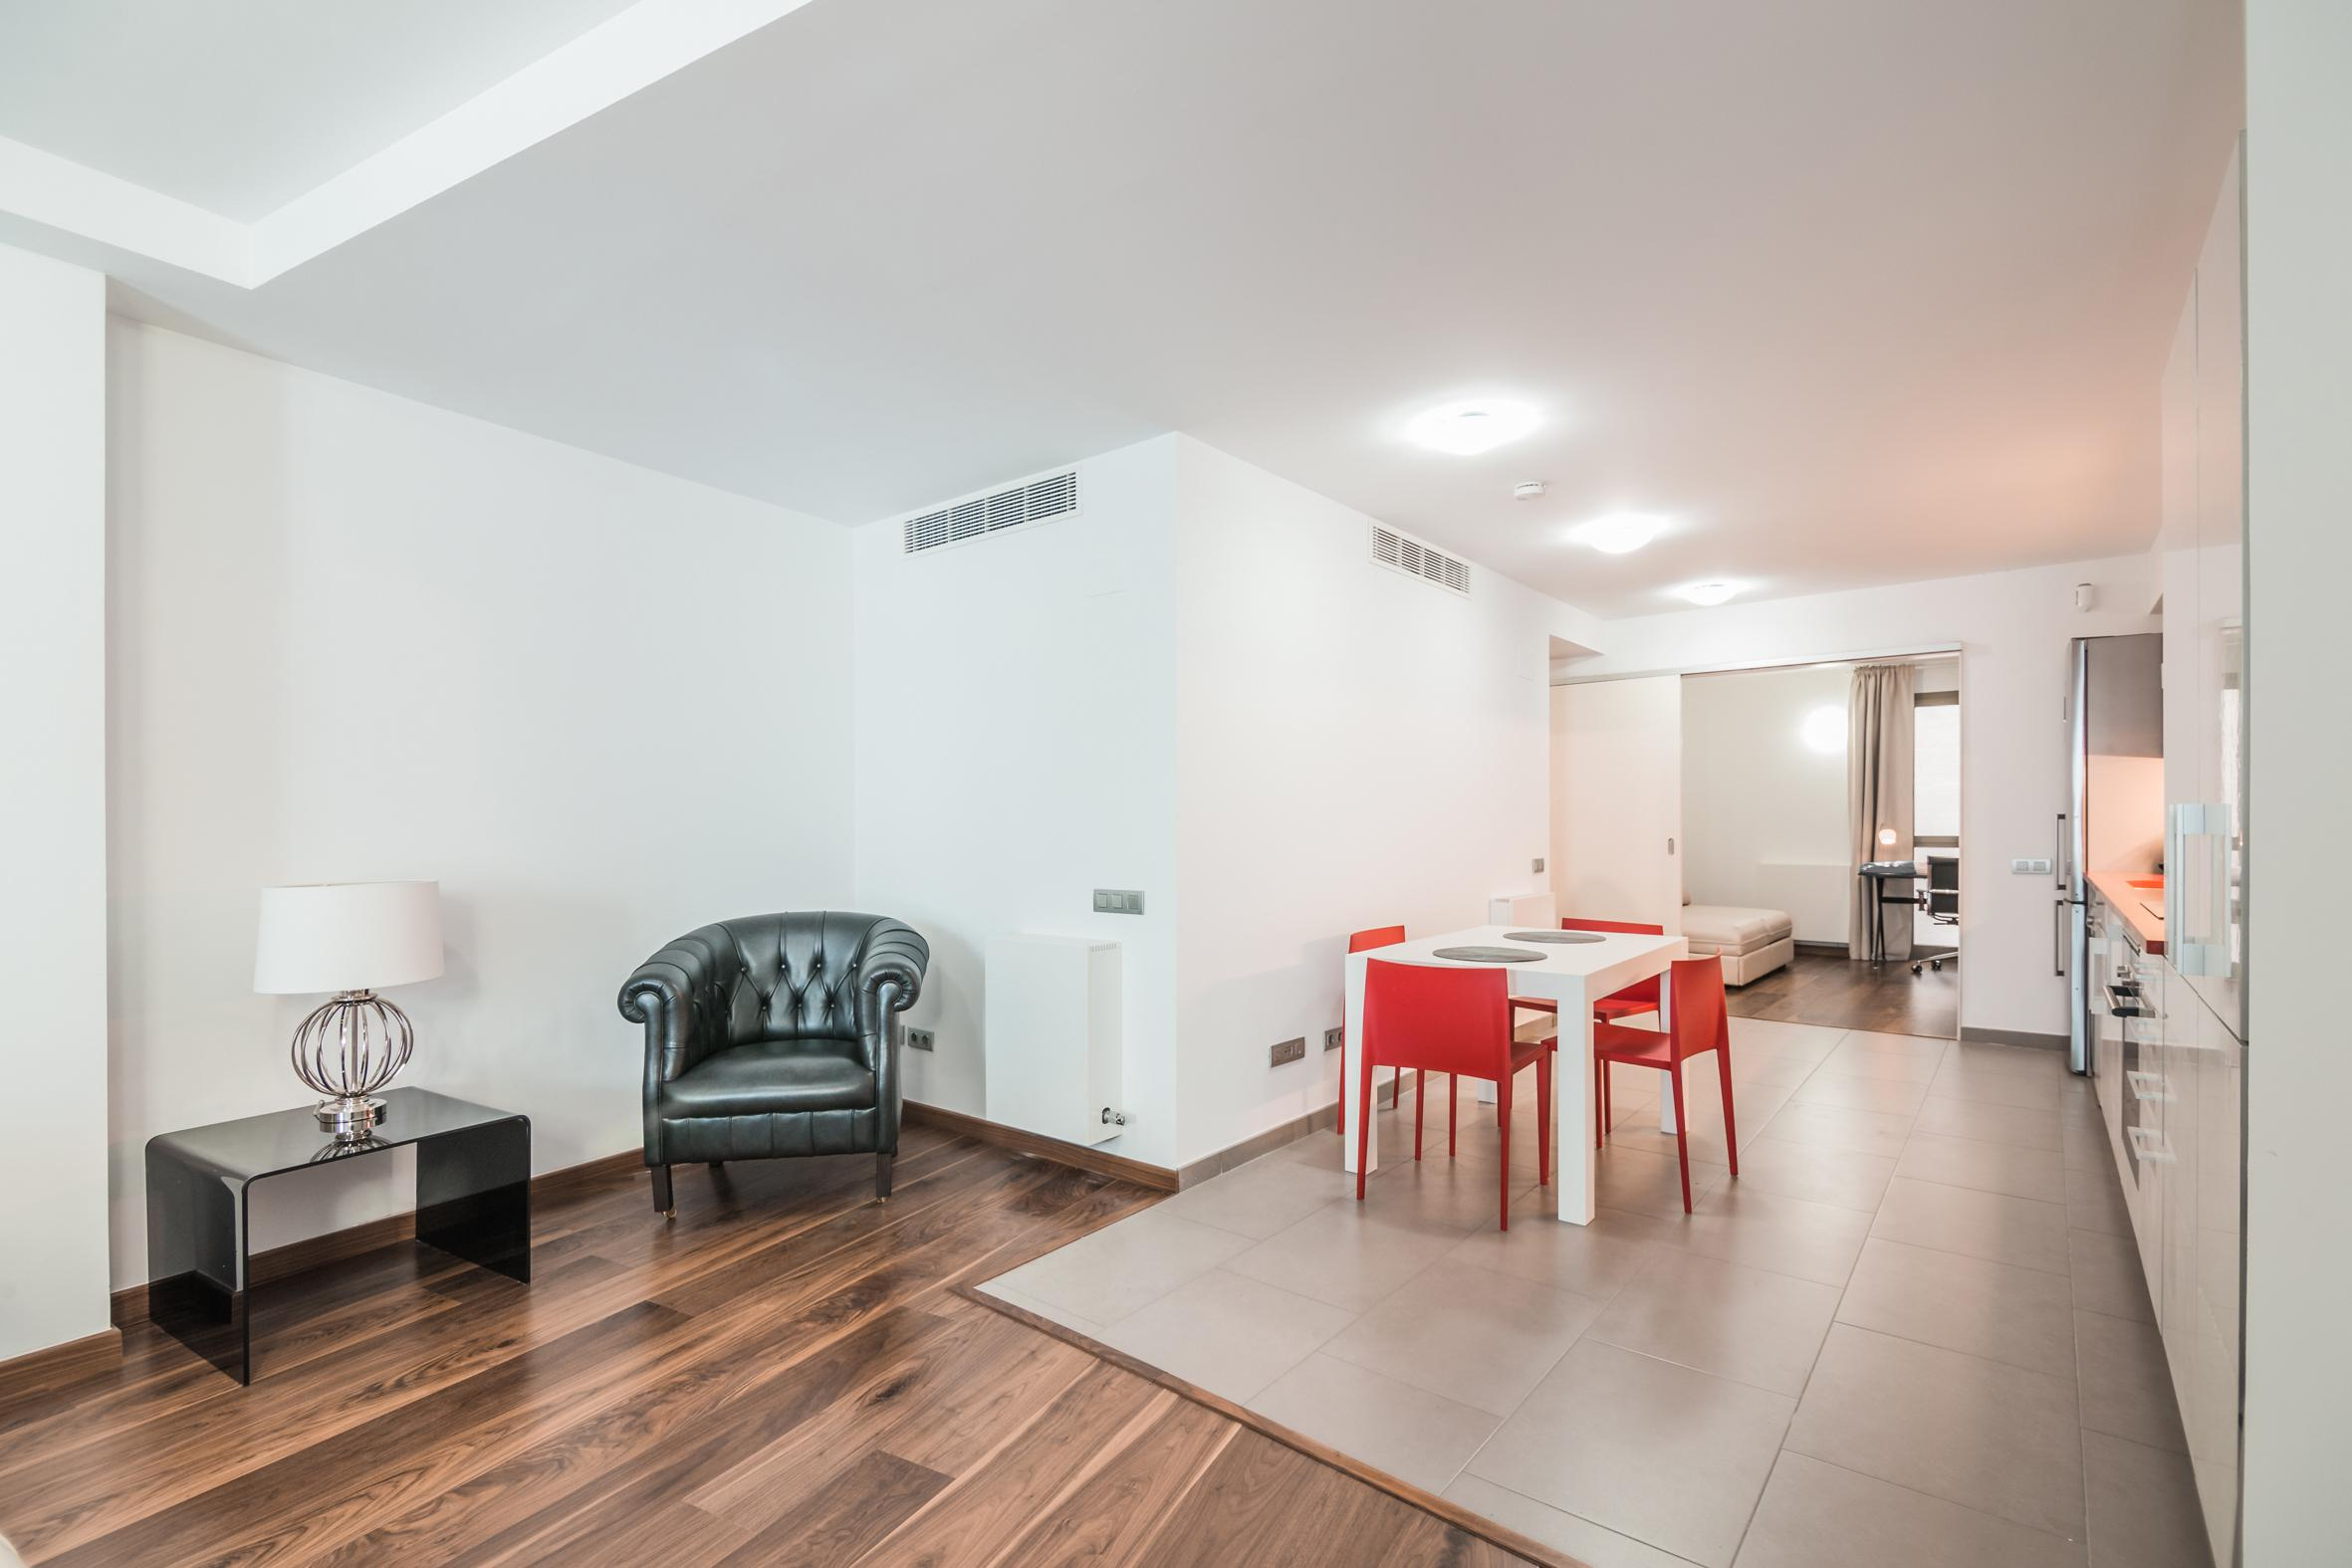 194056 Flat for sale in Ciutat Vella, Barri Gótic 8